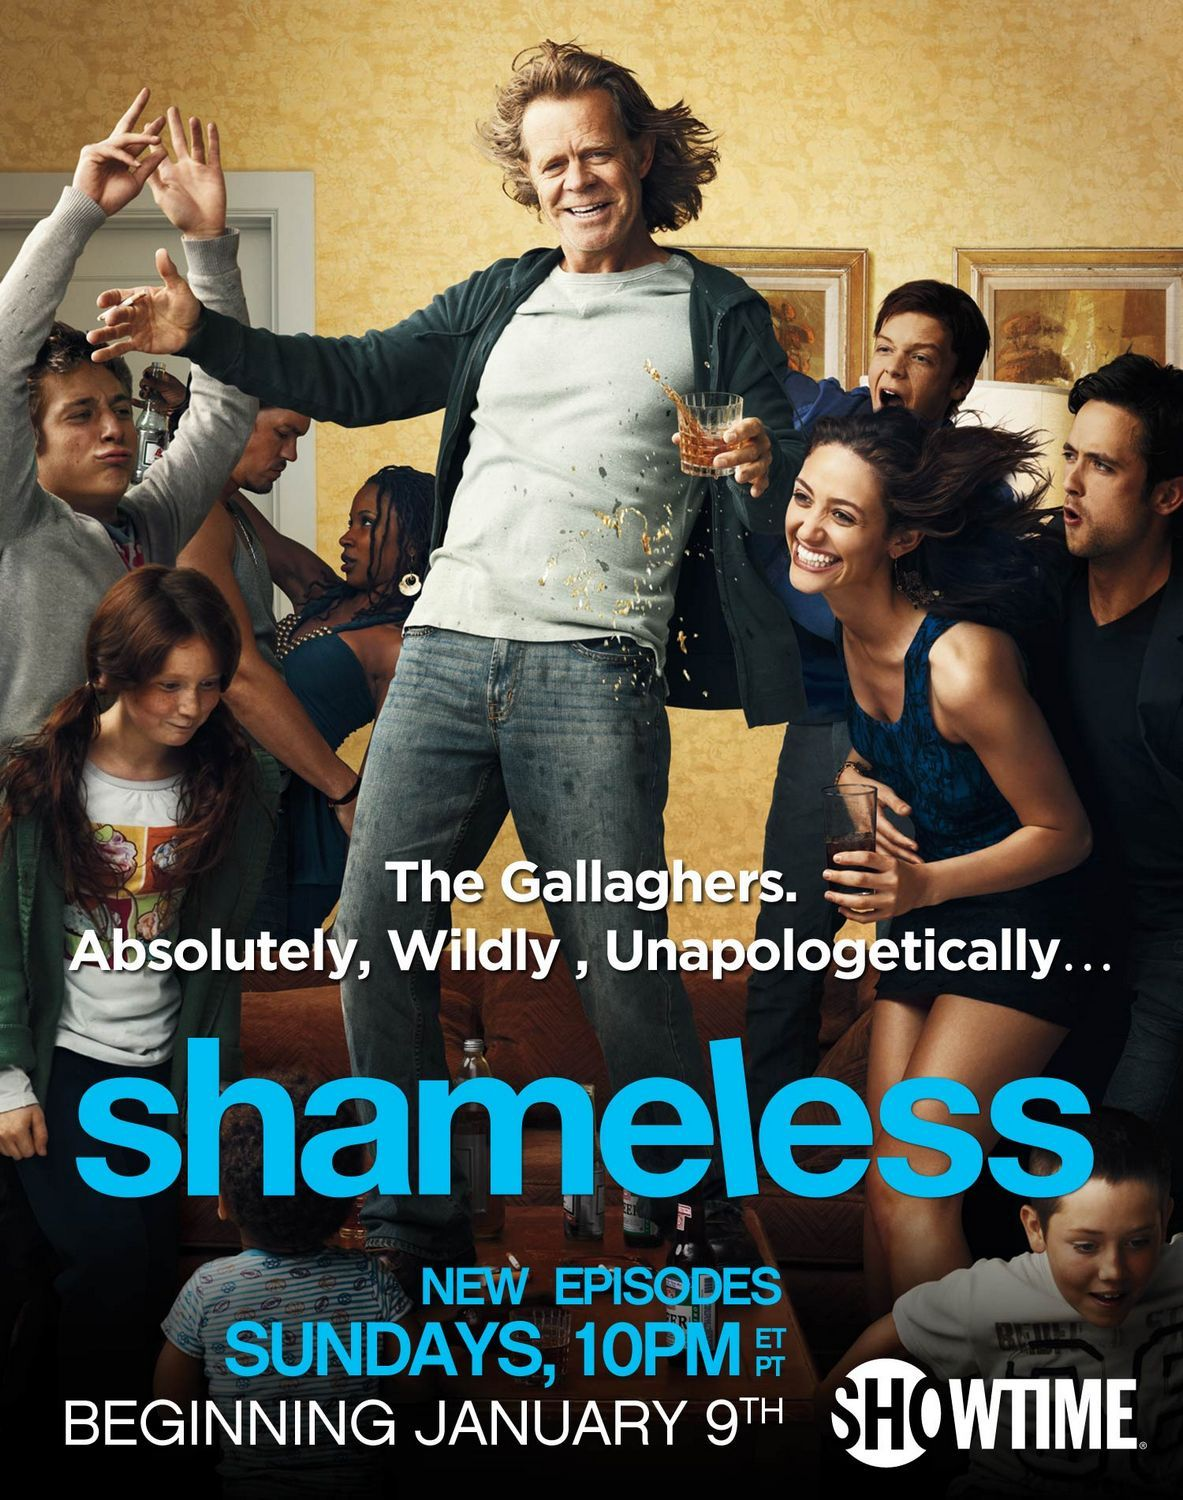 Funny Dramatic And Outrageous This Showtime Series Is A Must